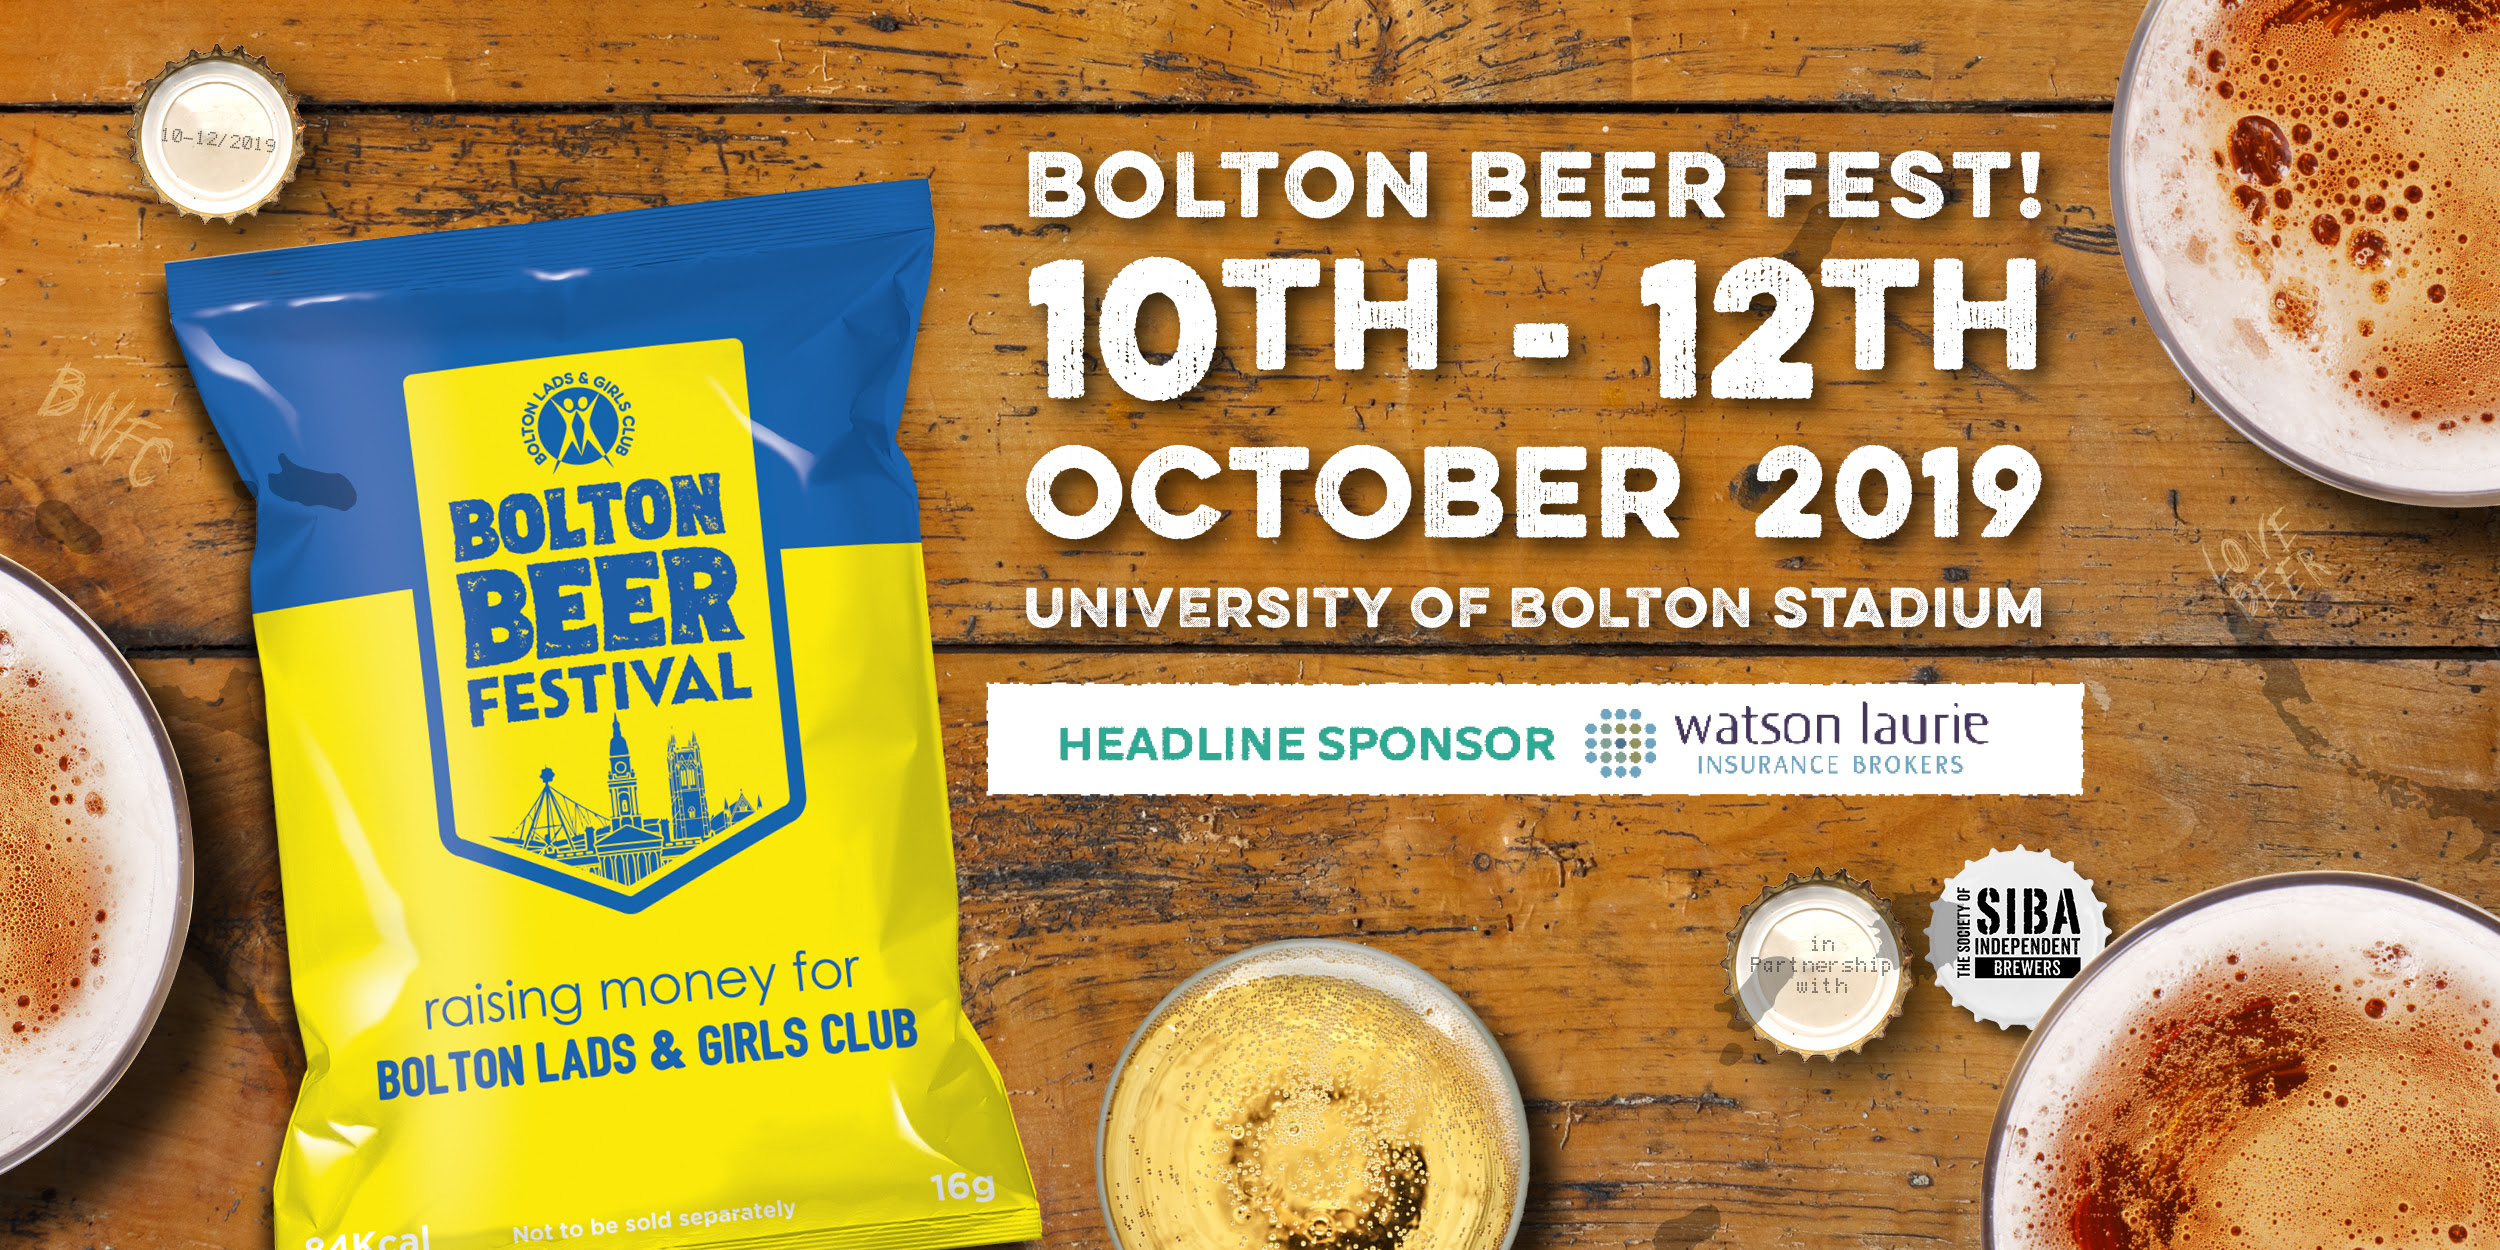 Bolton Beer Festival 2019 Thu 10th – Sat 12th October 2019